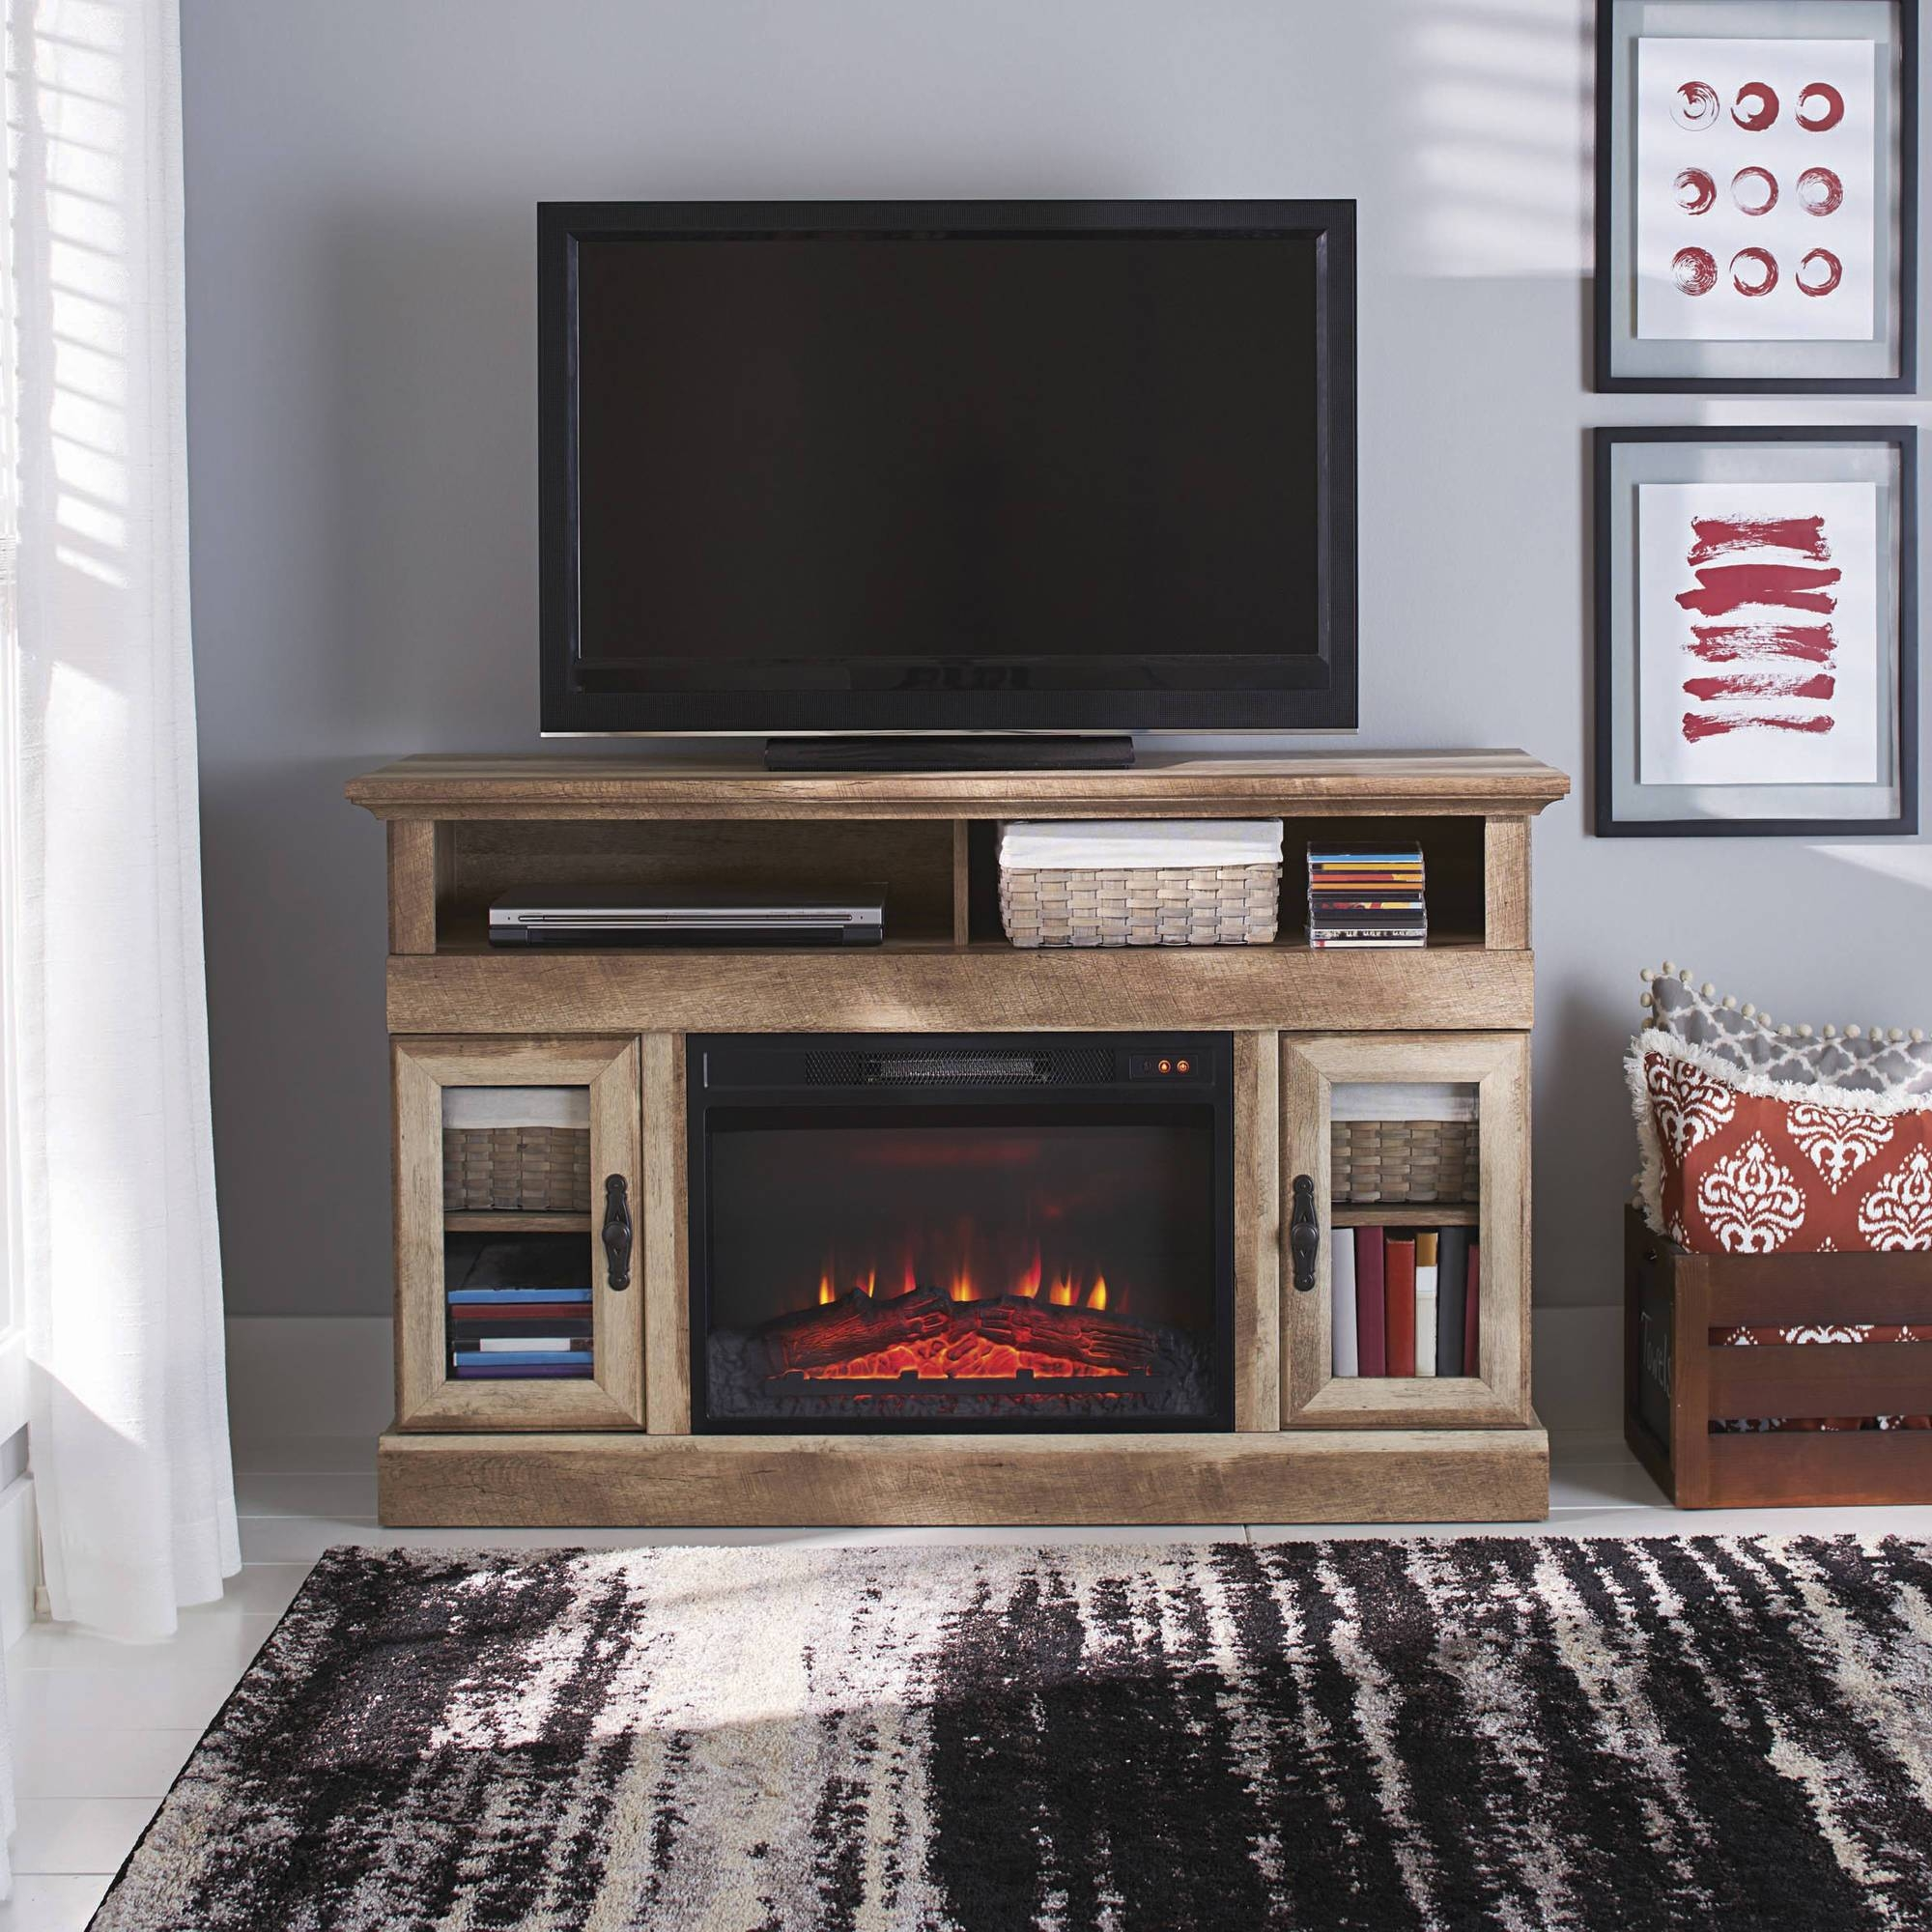 Tv Stands & Entertainment Centers - Walmart with regard to Storage Tv Stands (Image 14 of 15)